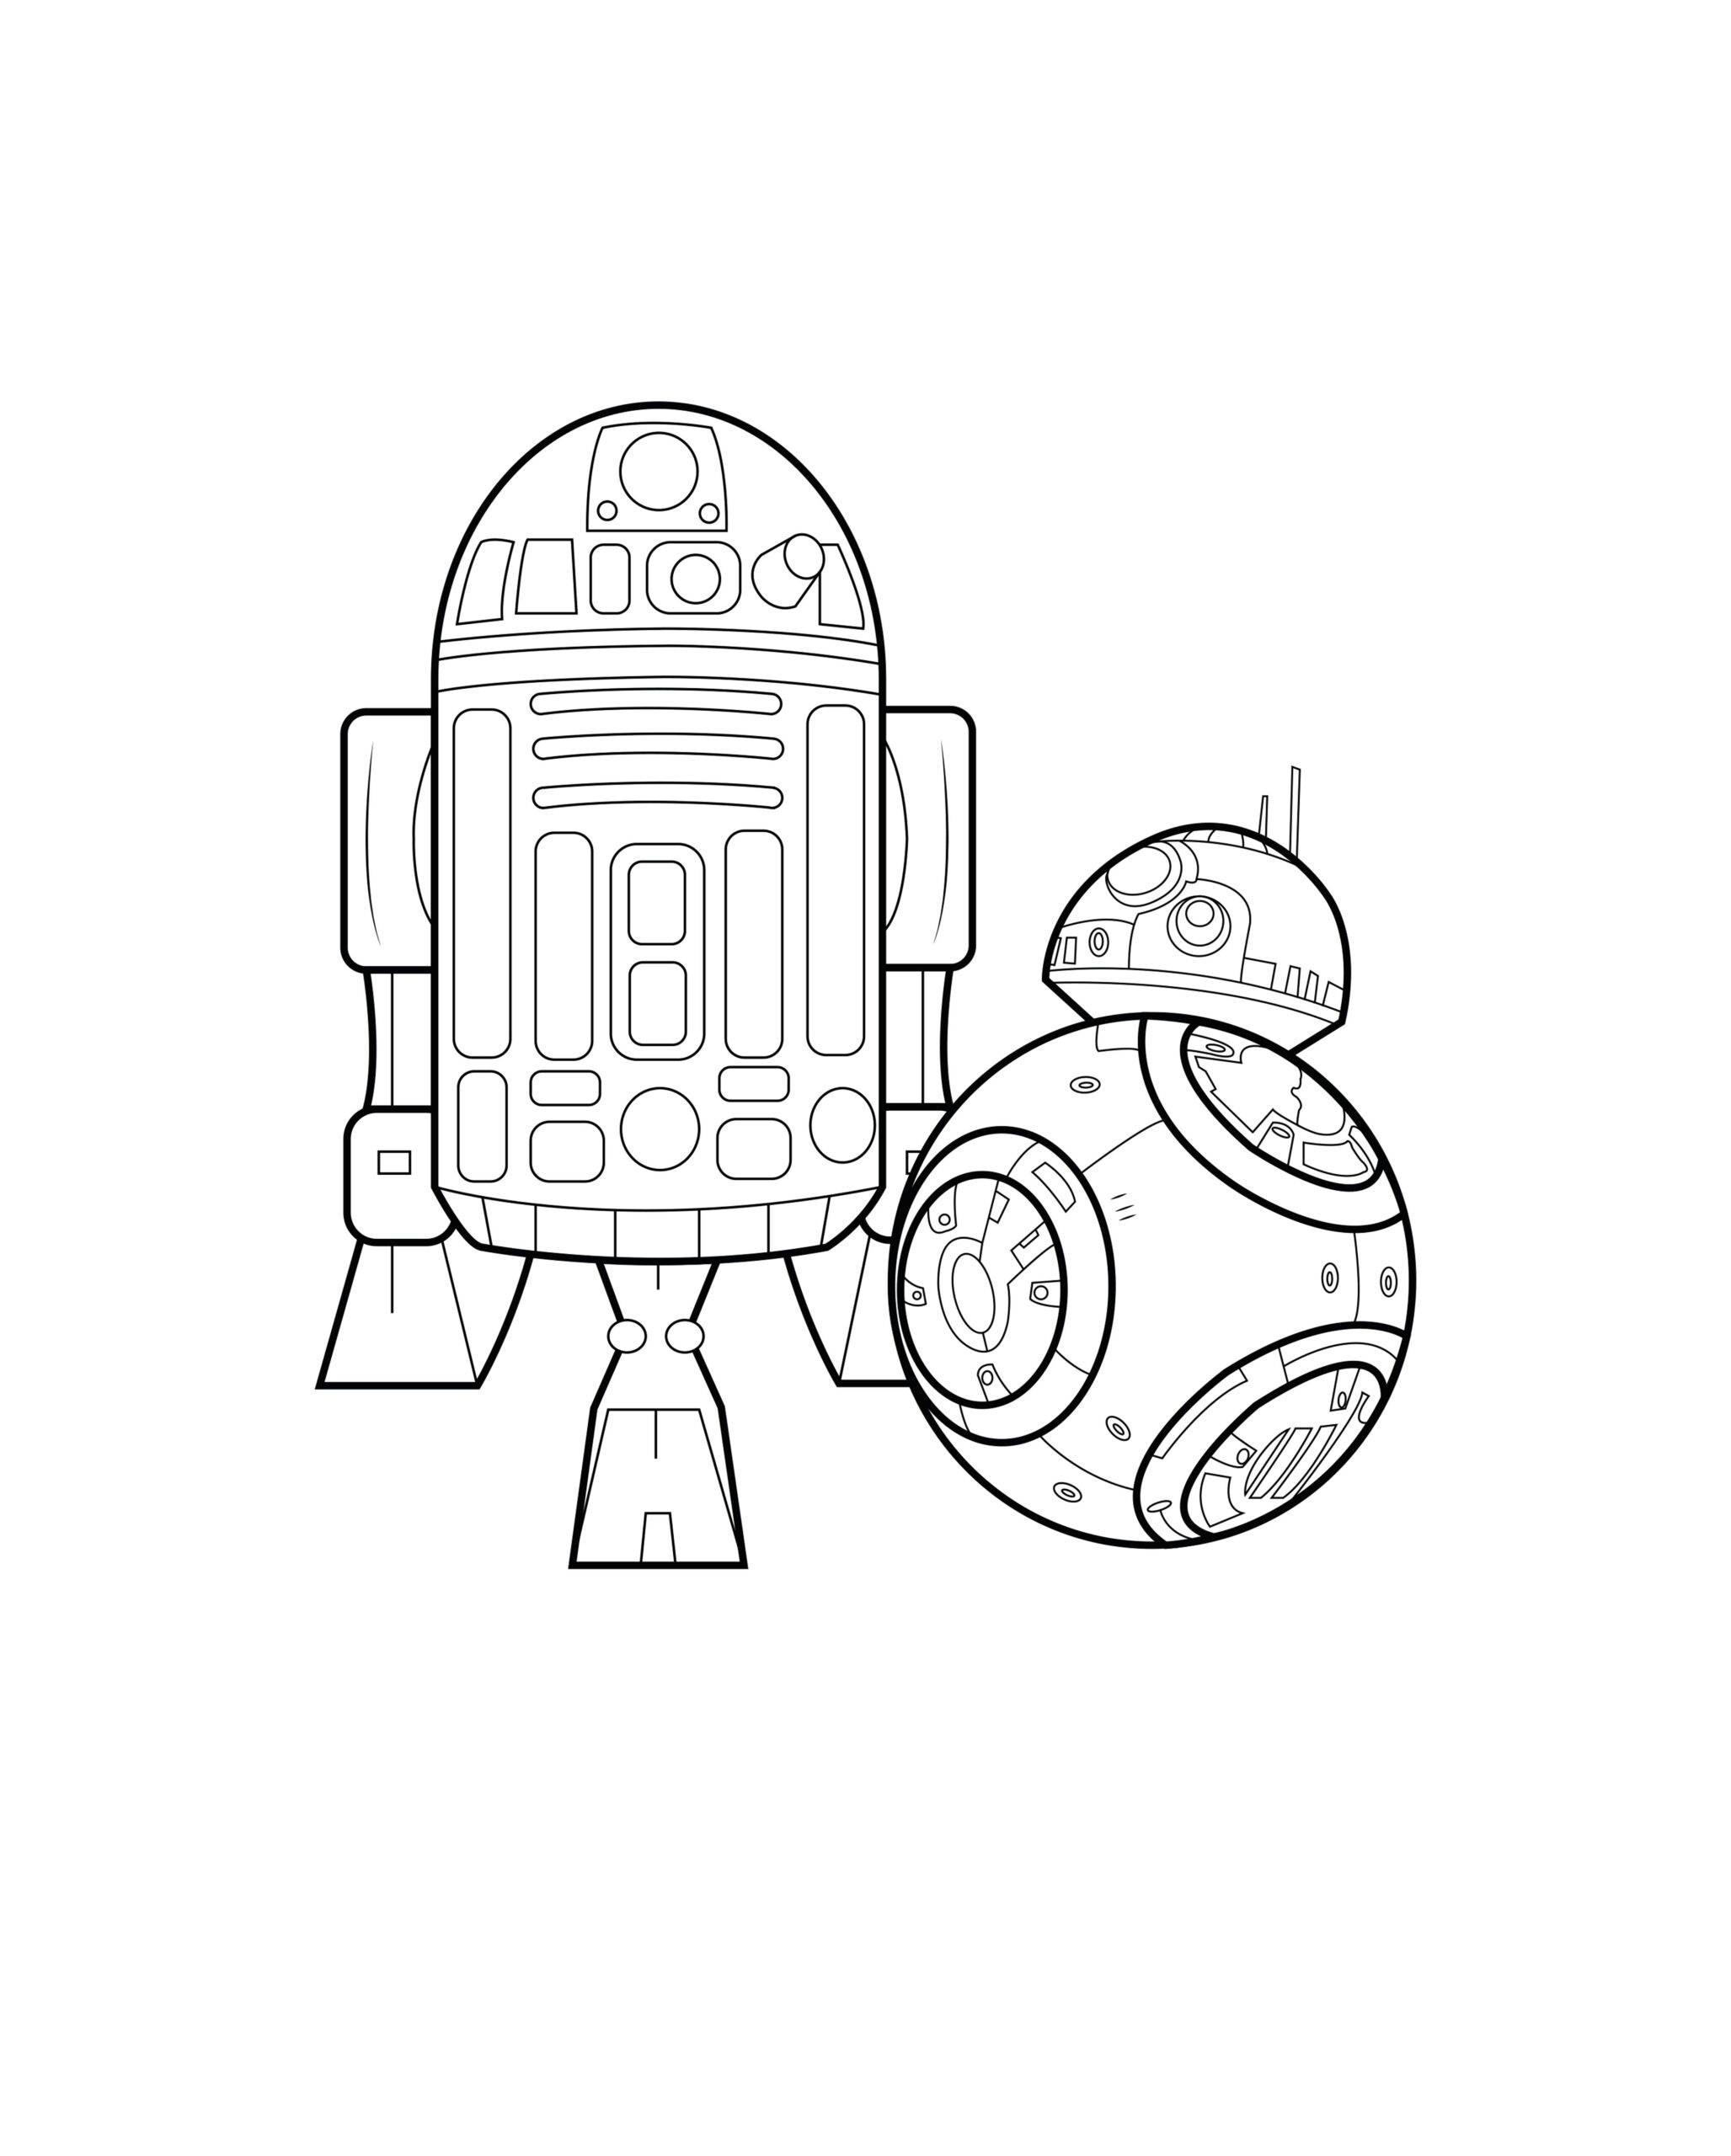 r2d2 by allan movies adult coloring paint sets for children super heros cerulean blue coloring pages R2d2 Coloring Page